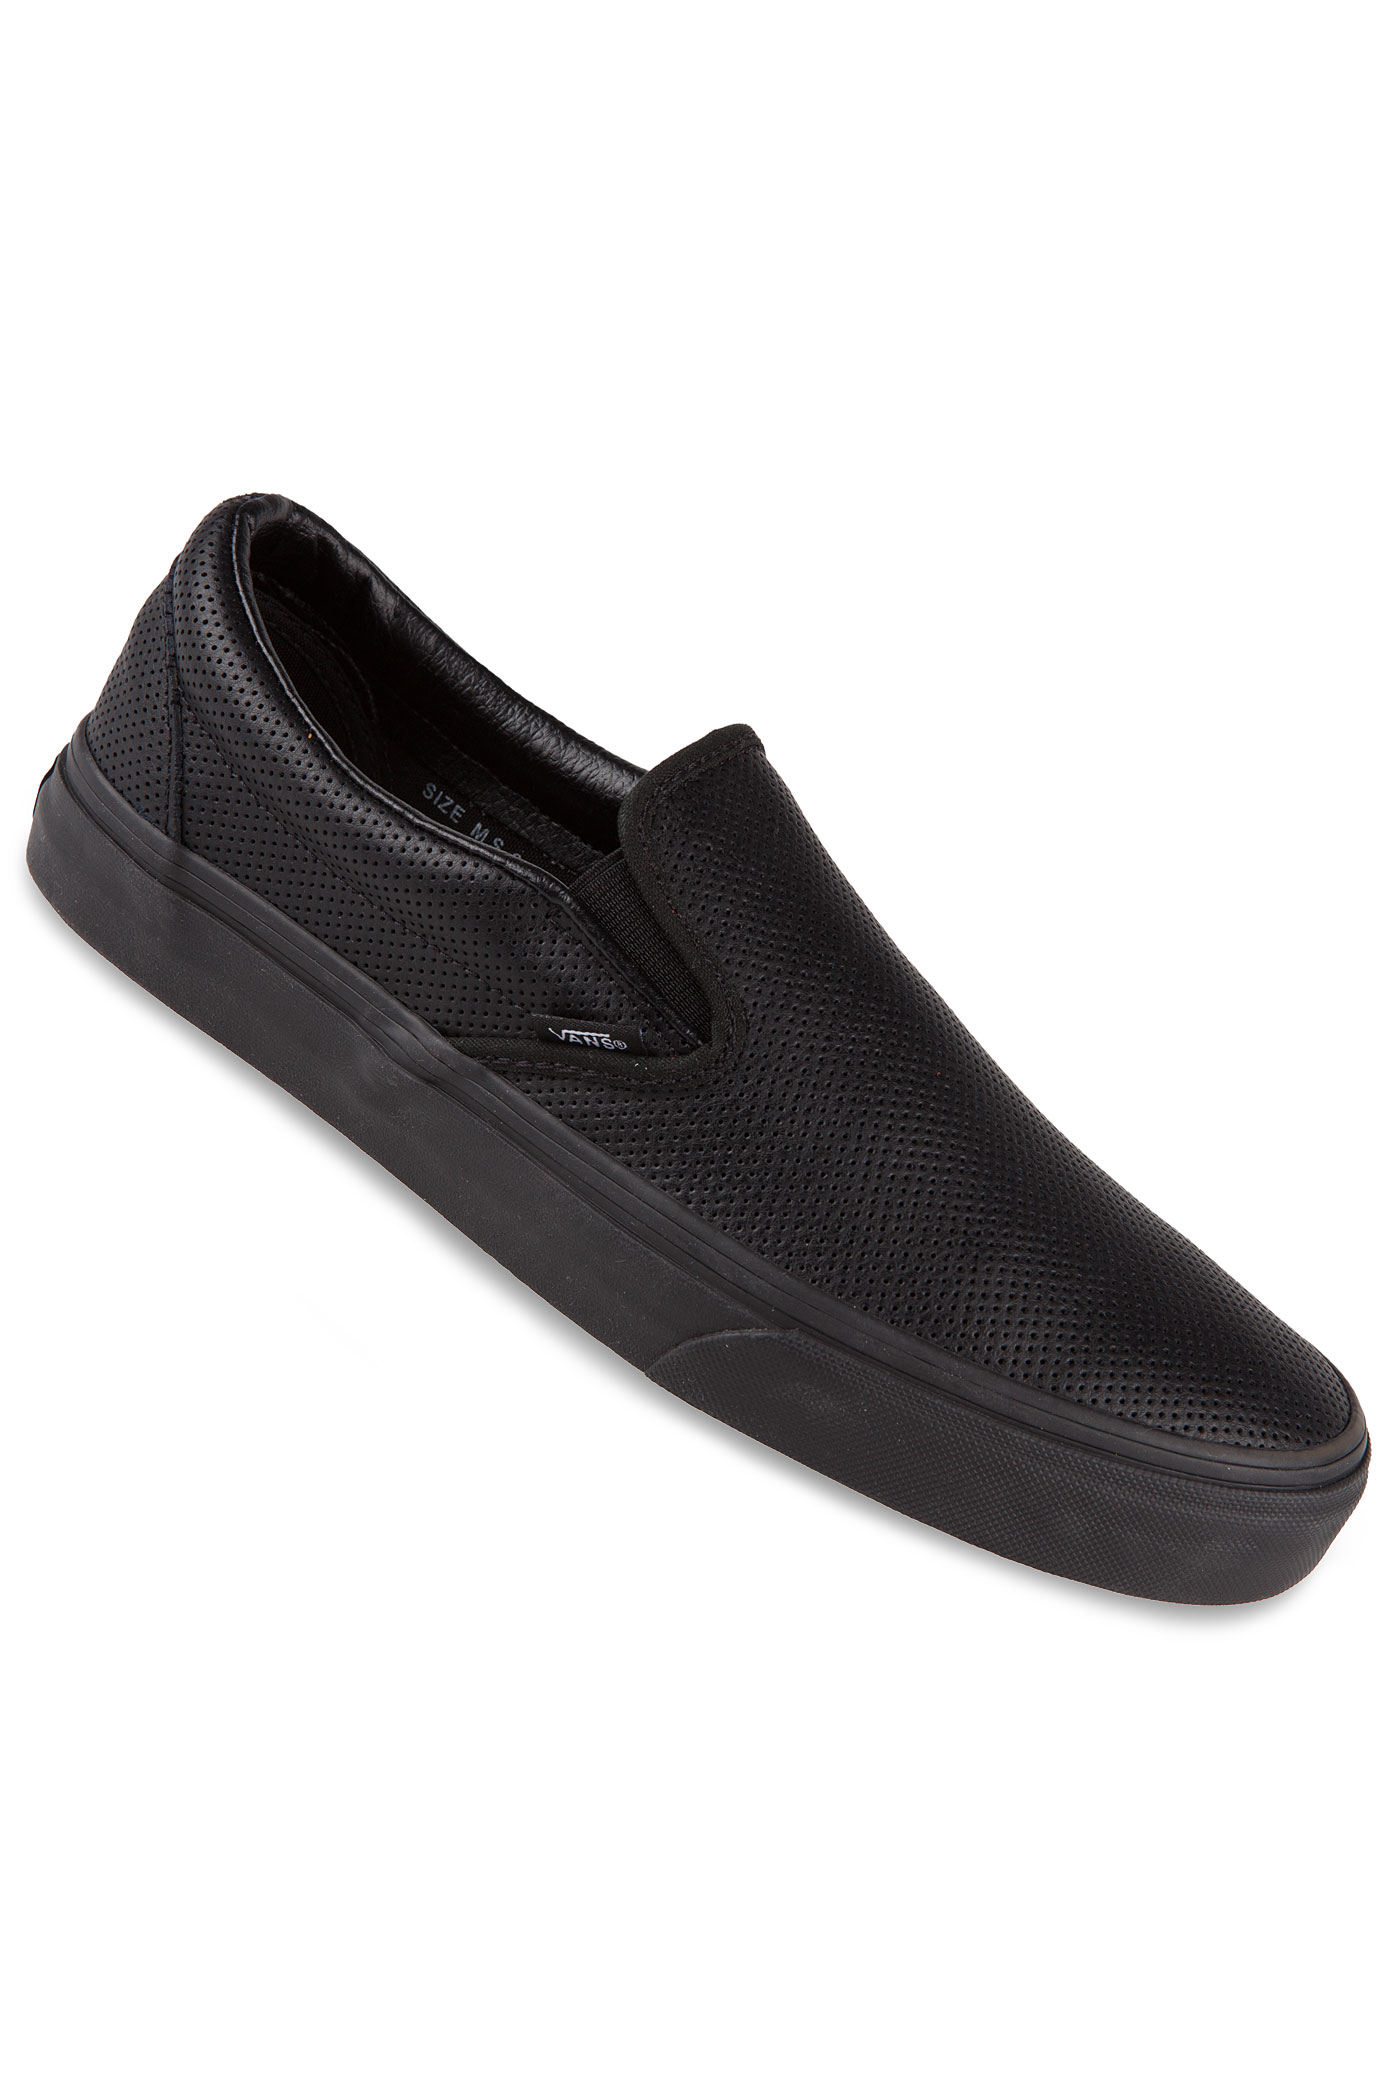 vans classic slip on leather chaussure perf black black achetez sur skatedeluxe. Black Bedroom Furniture Sets. Home Design Ideas